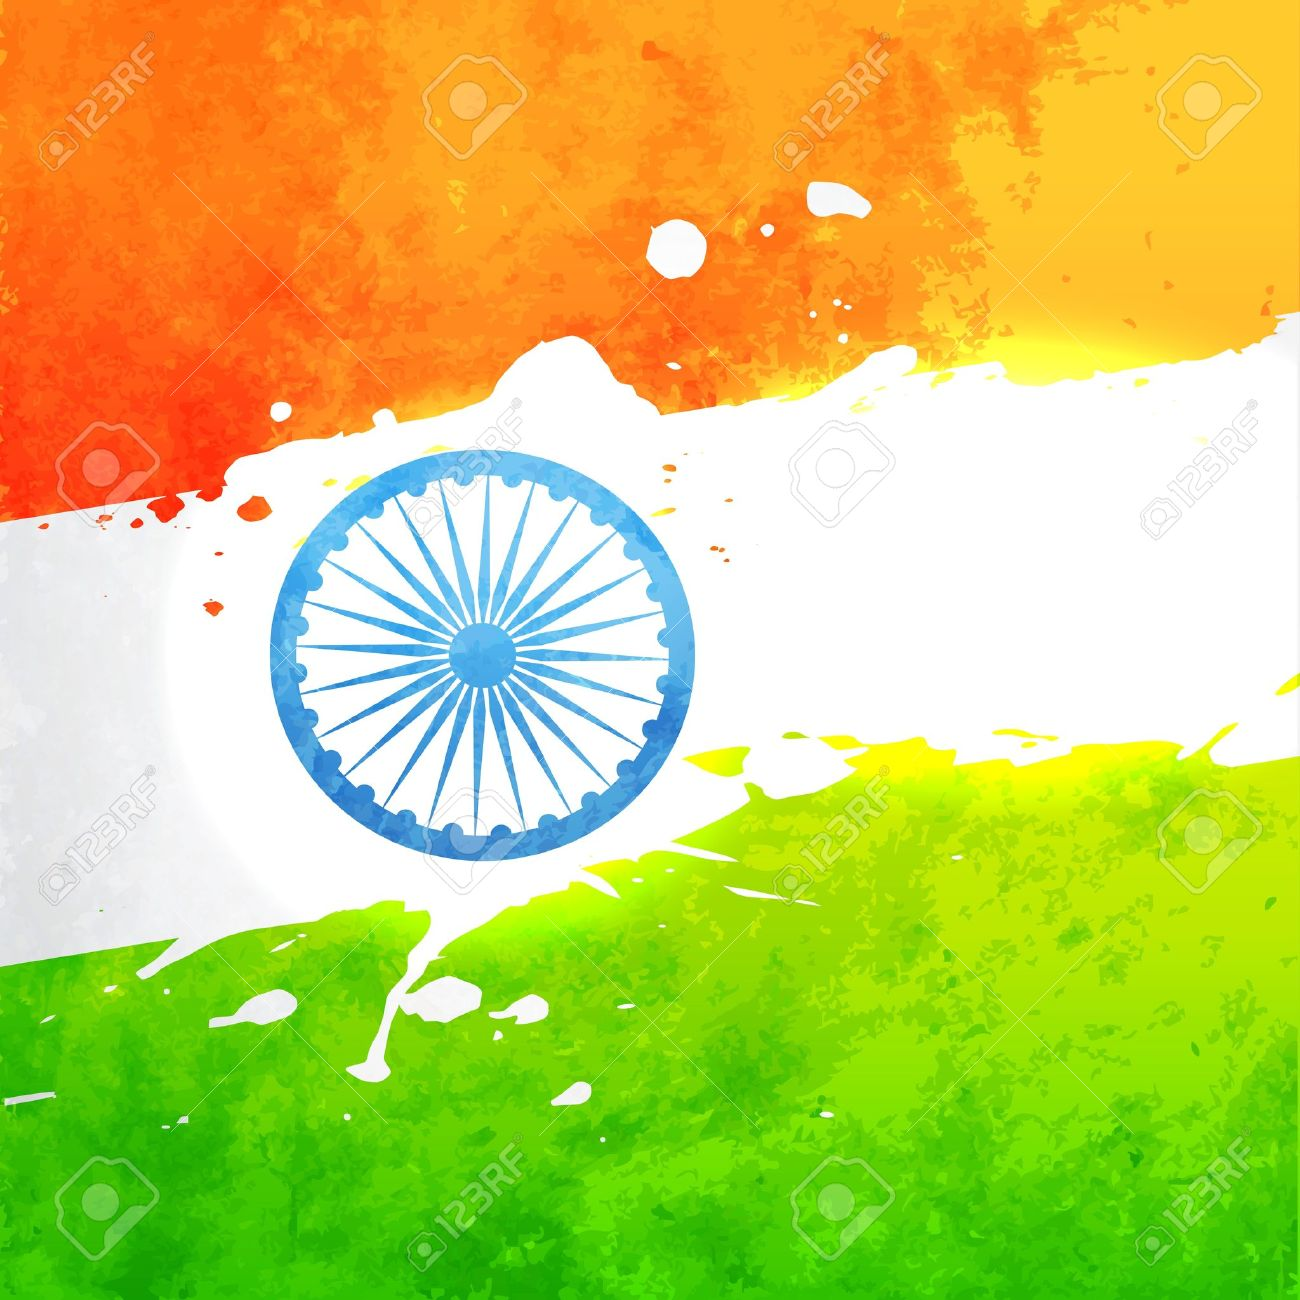 Indian Flag In Grunge Style Vector Background Royalty 1300x1300